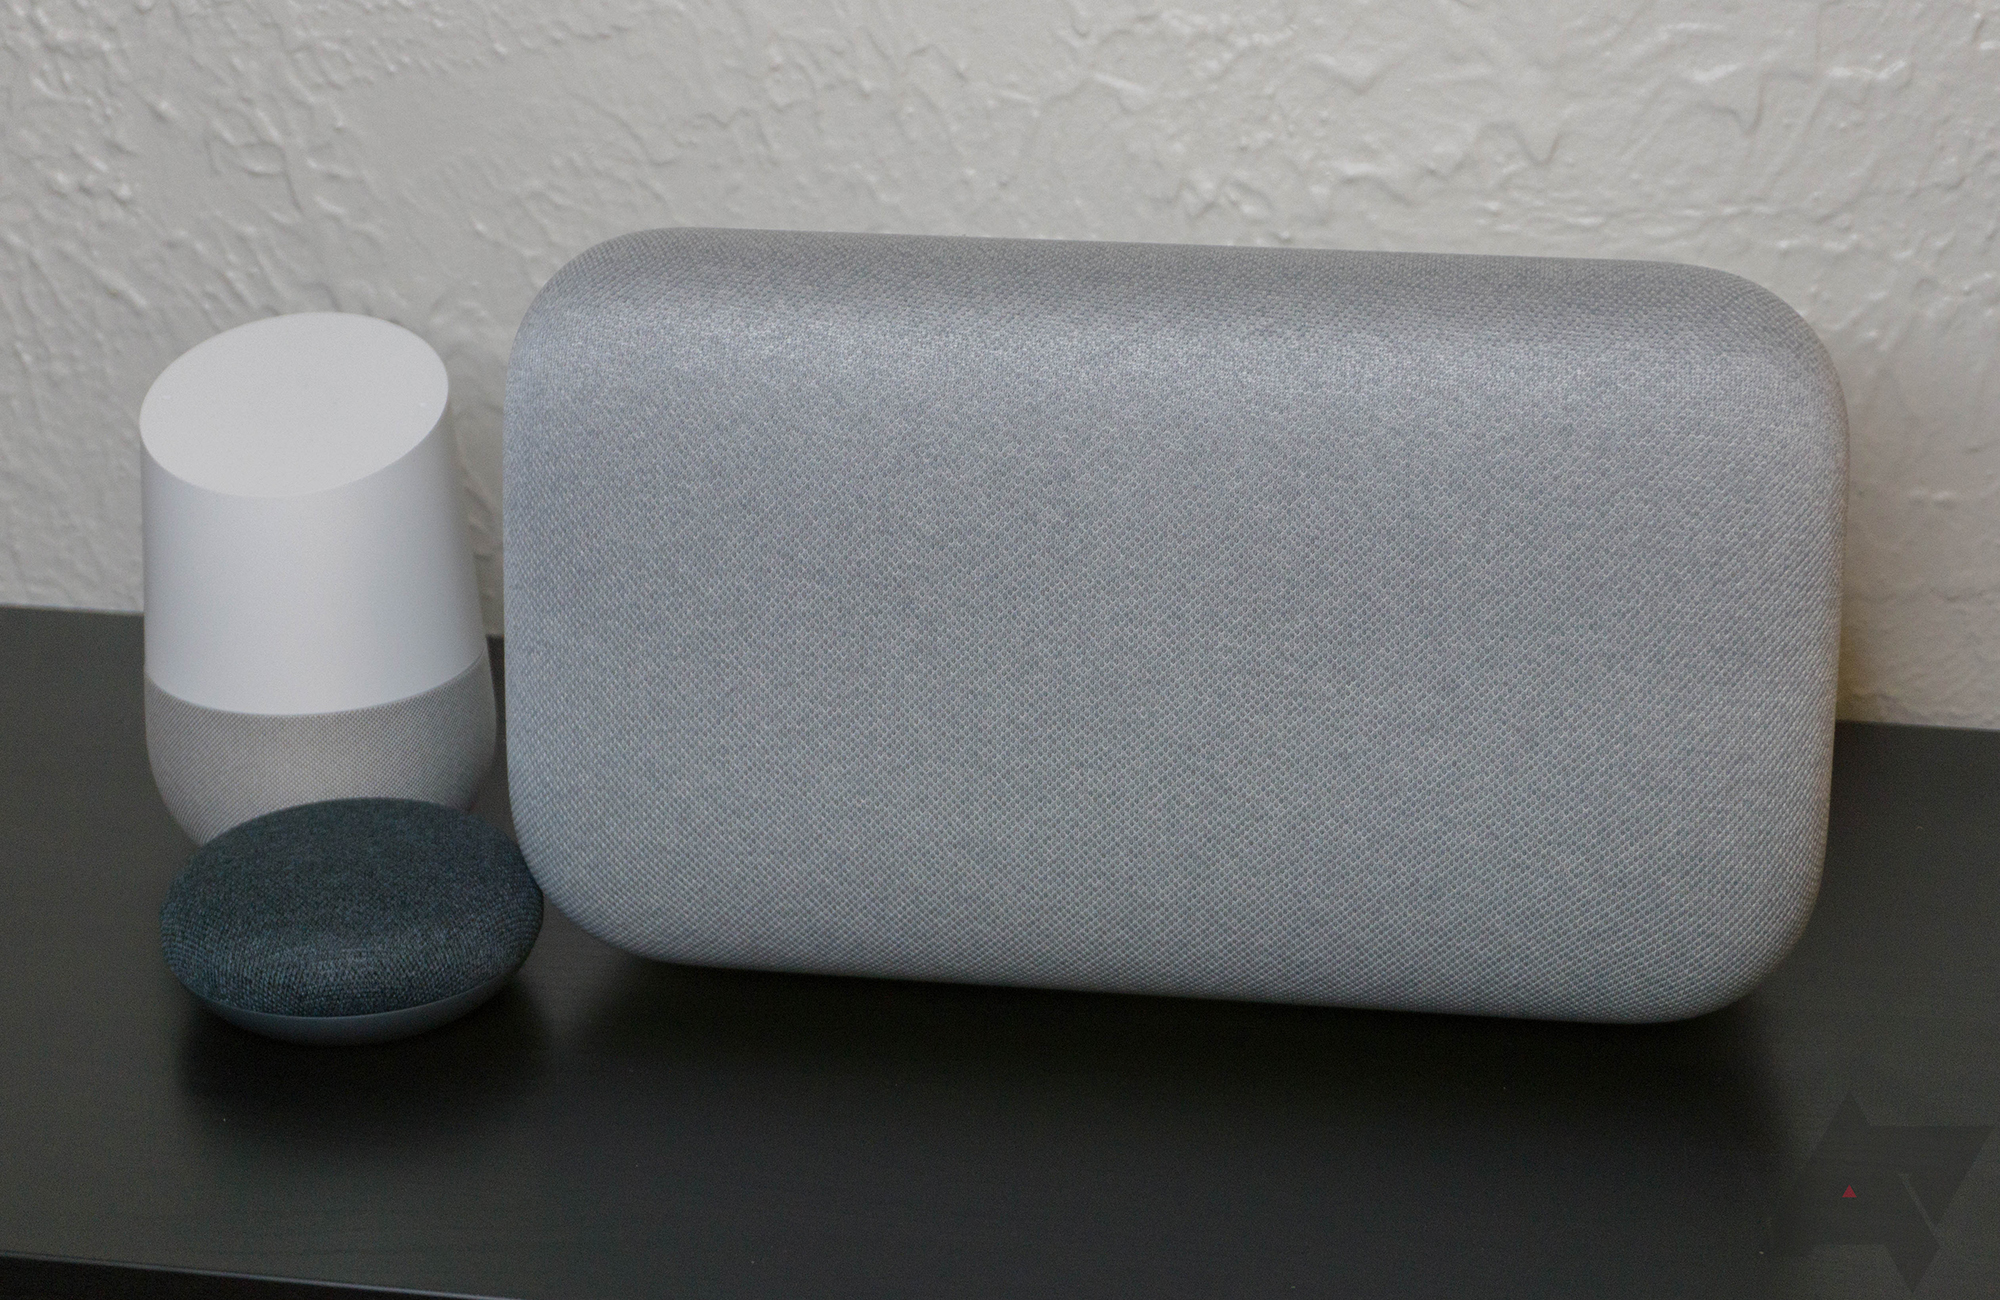 Google Home Max officially terminated after it was no longer available